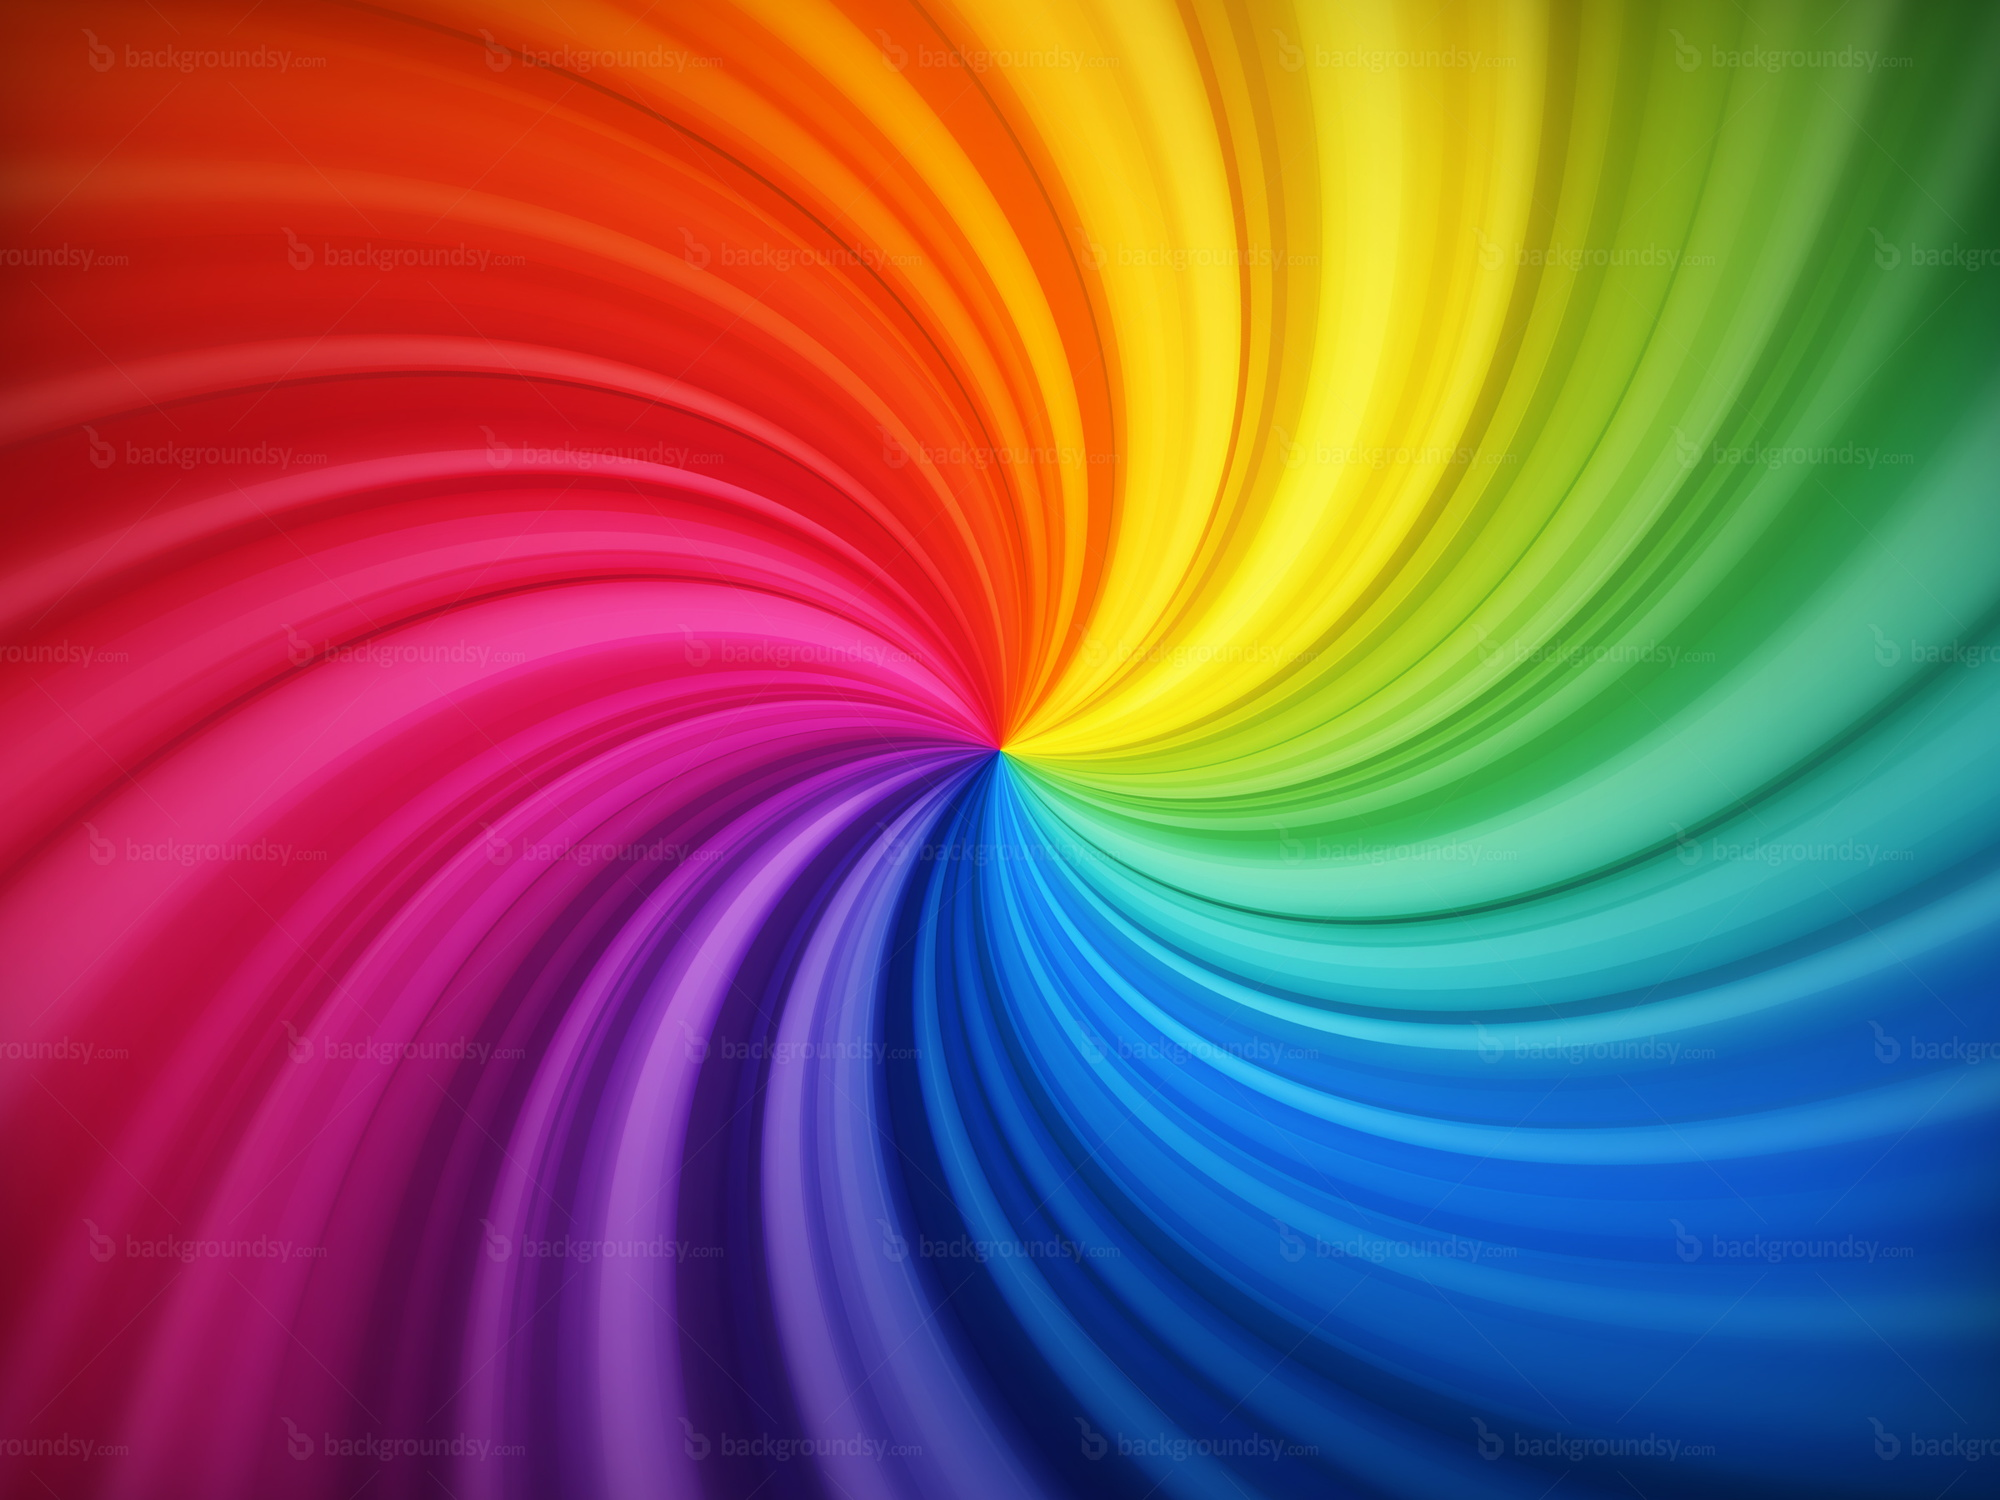 Spiral rainbow background   Backgroundsy com Spiral rainbow background